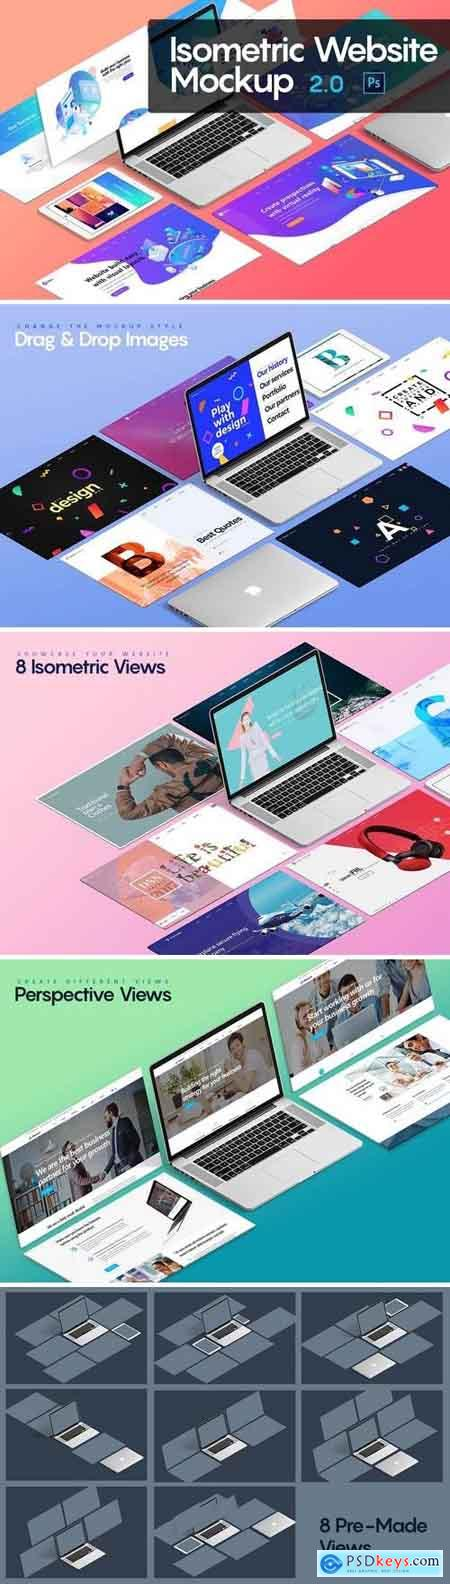 Isometric Website Mockup 2.0